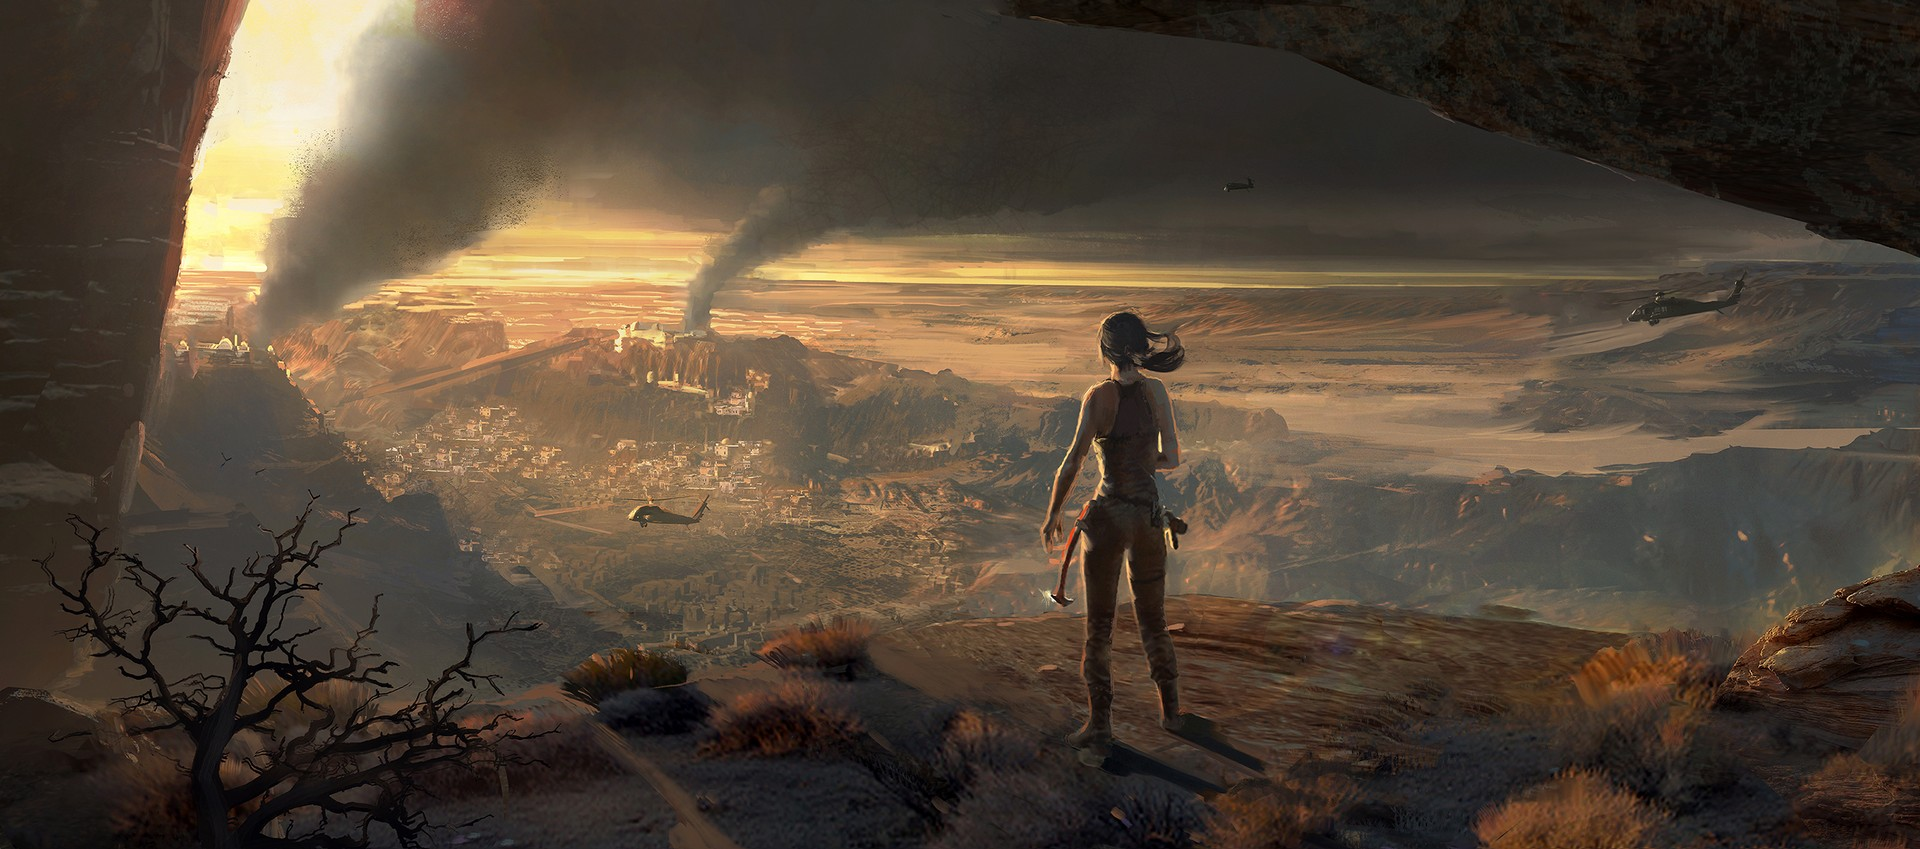 7s8c_rise-of-the-tomb-raider-concept-art-1.jpg